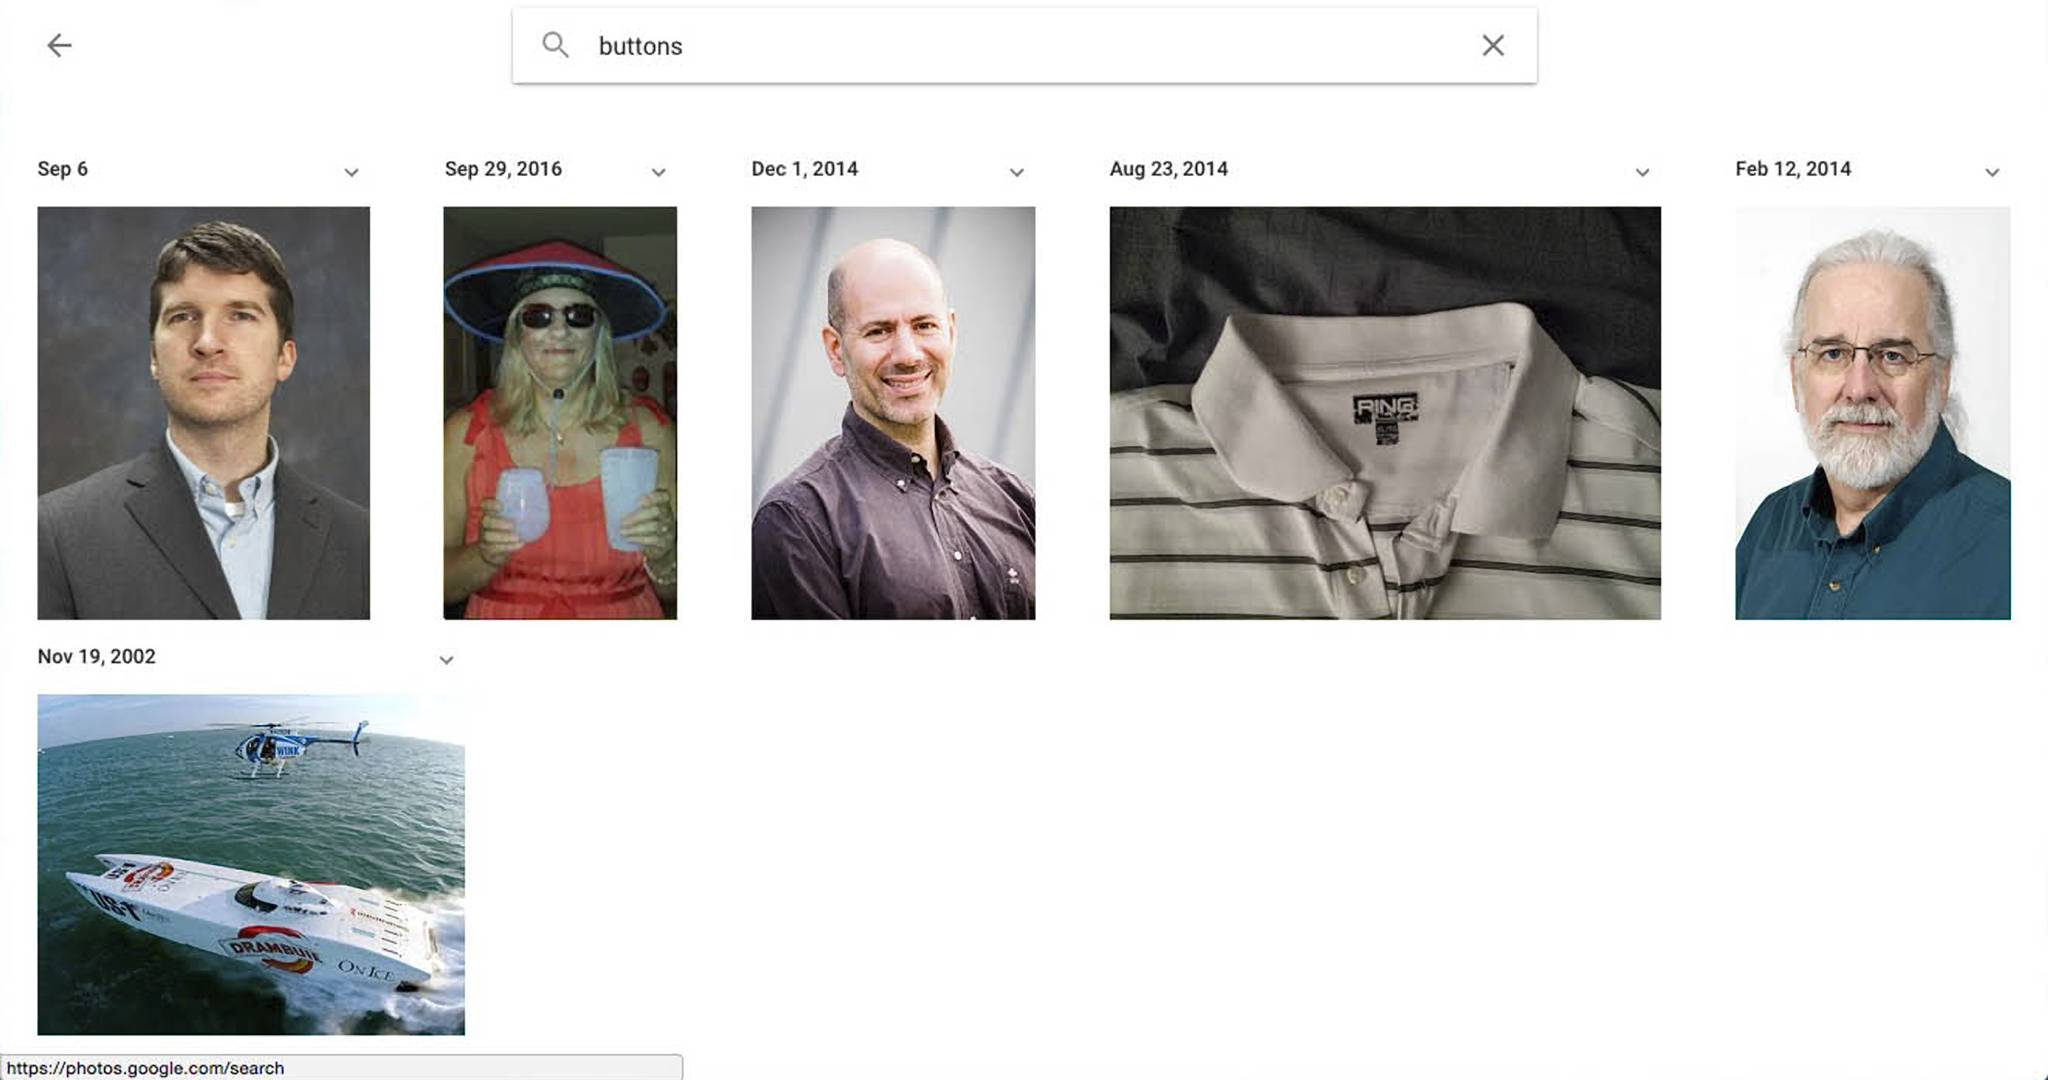 Images from my Google Photos account